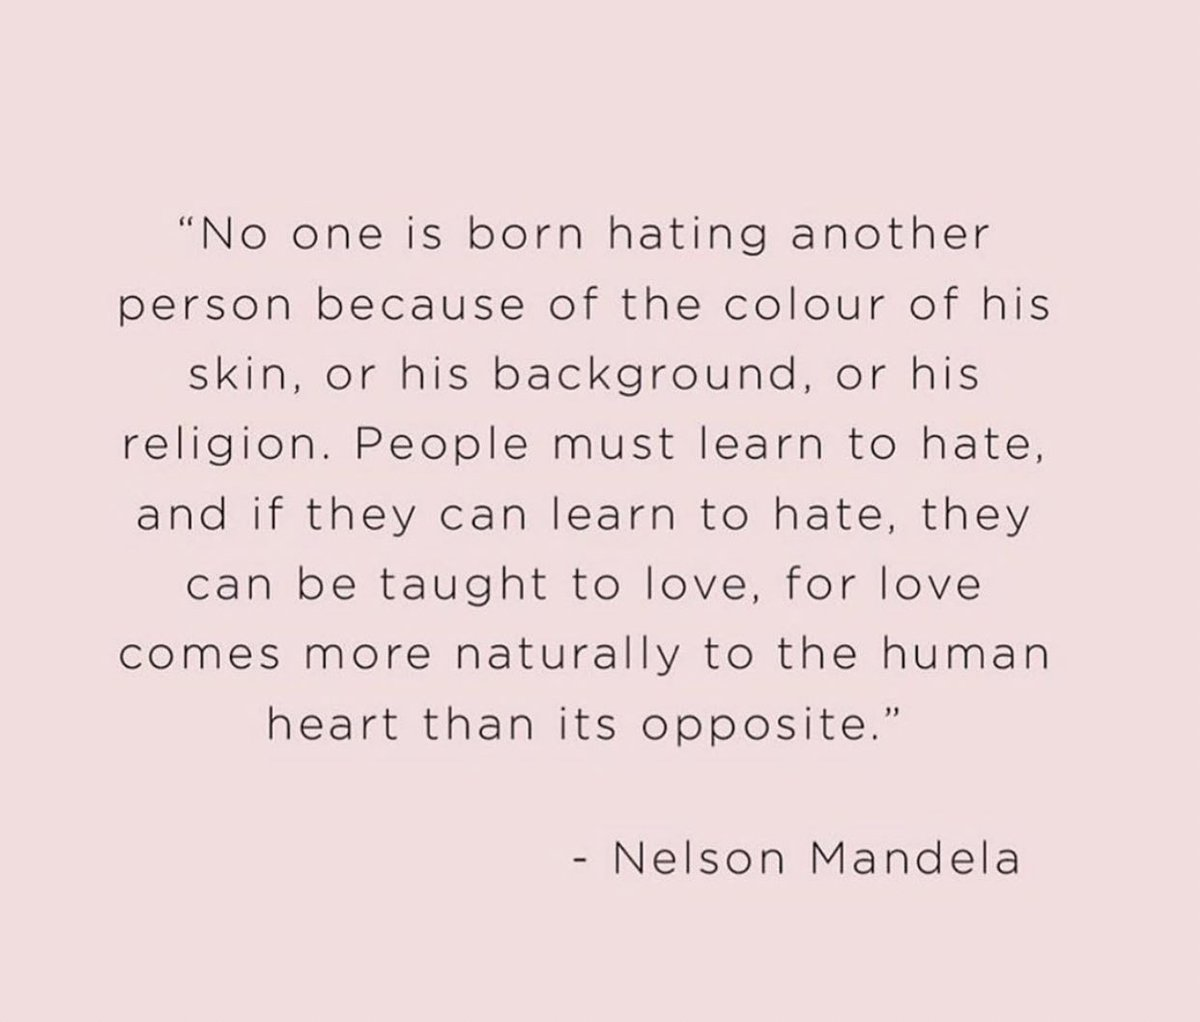 #wiseWords #everylivematters